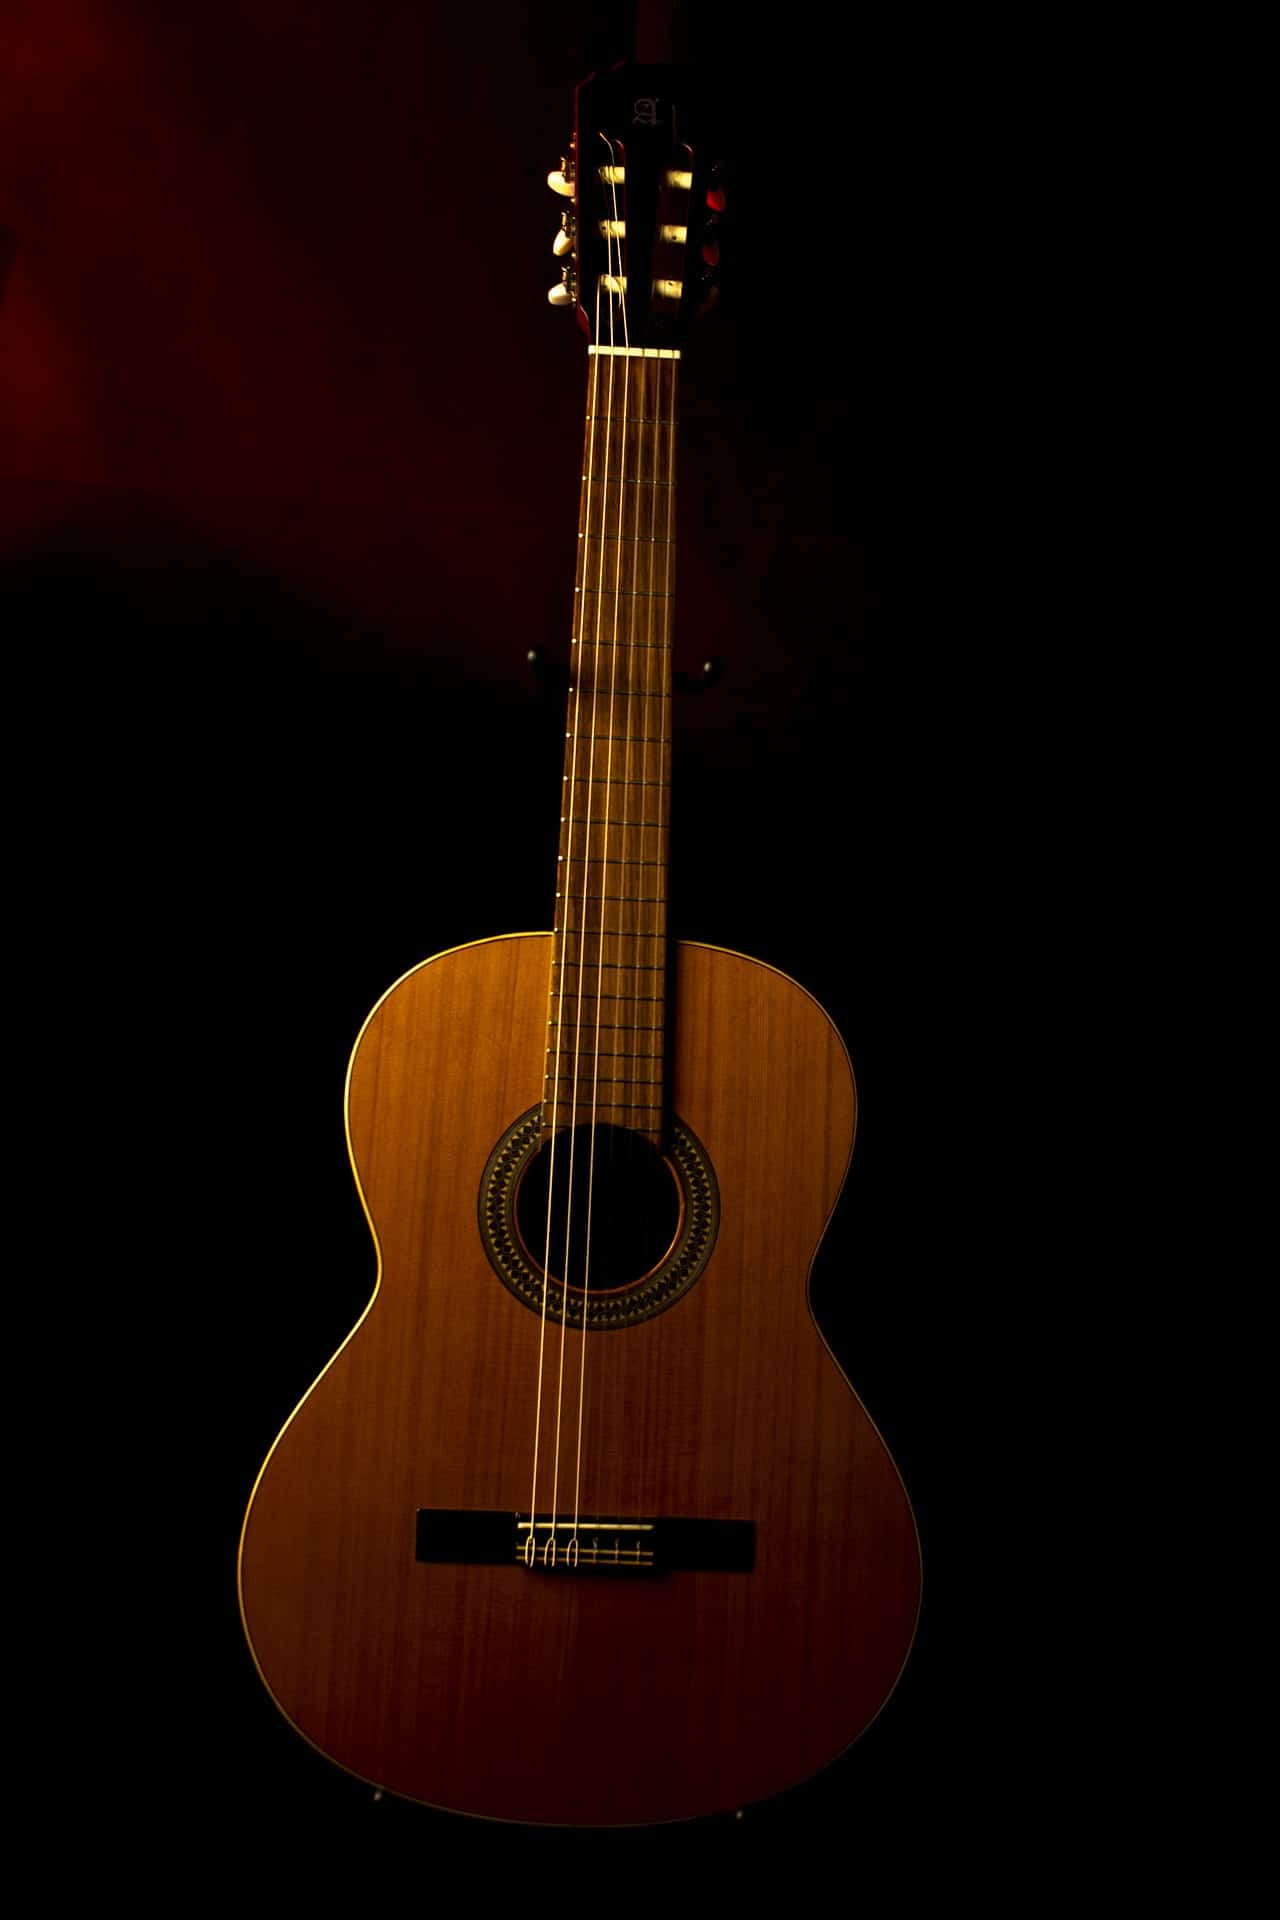 Modern acoustic guitar with a deeper and wider guitar body